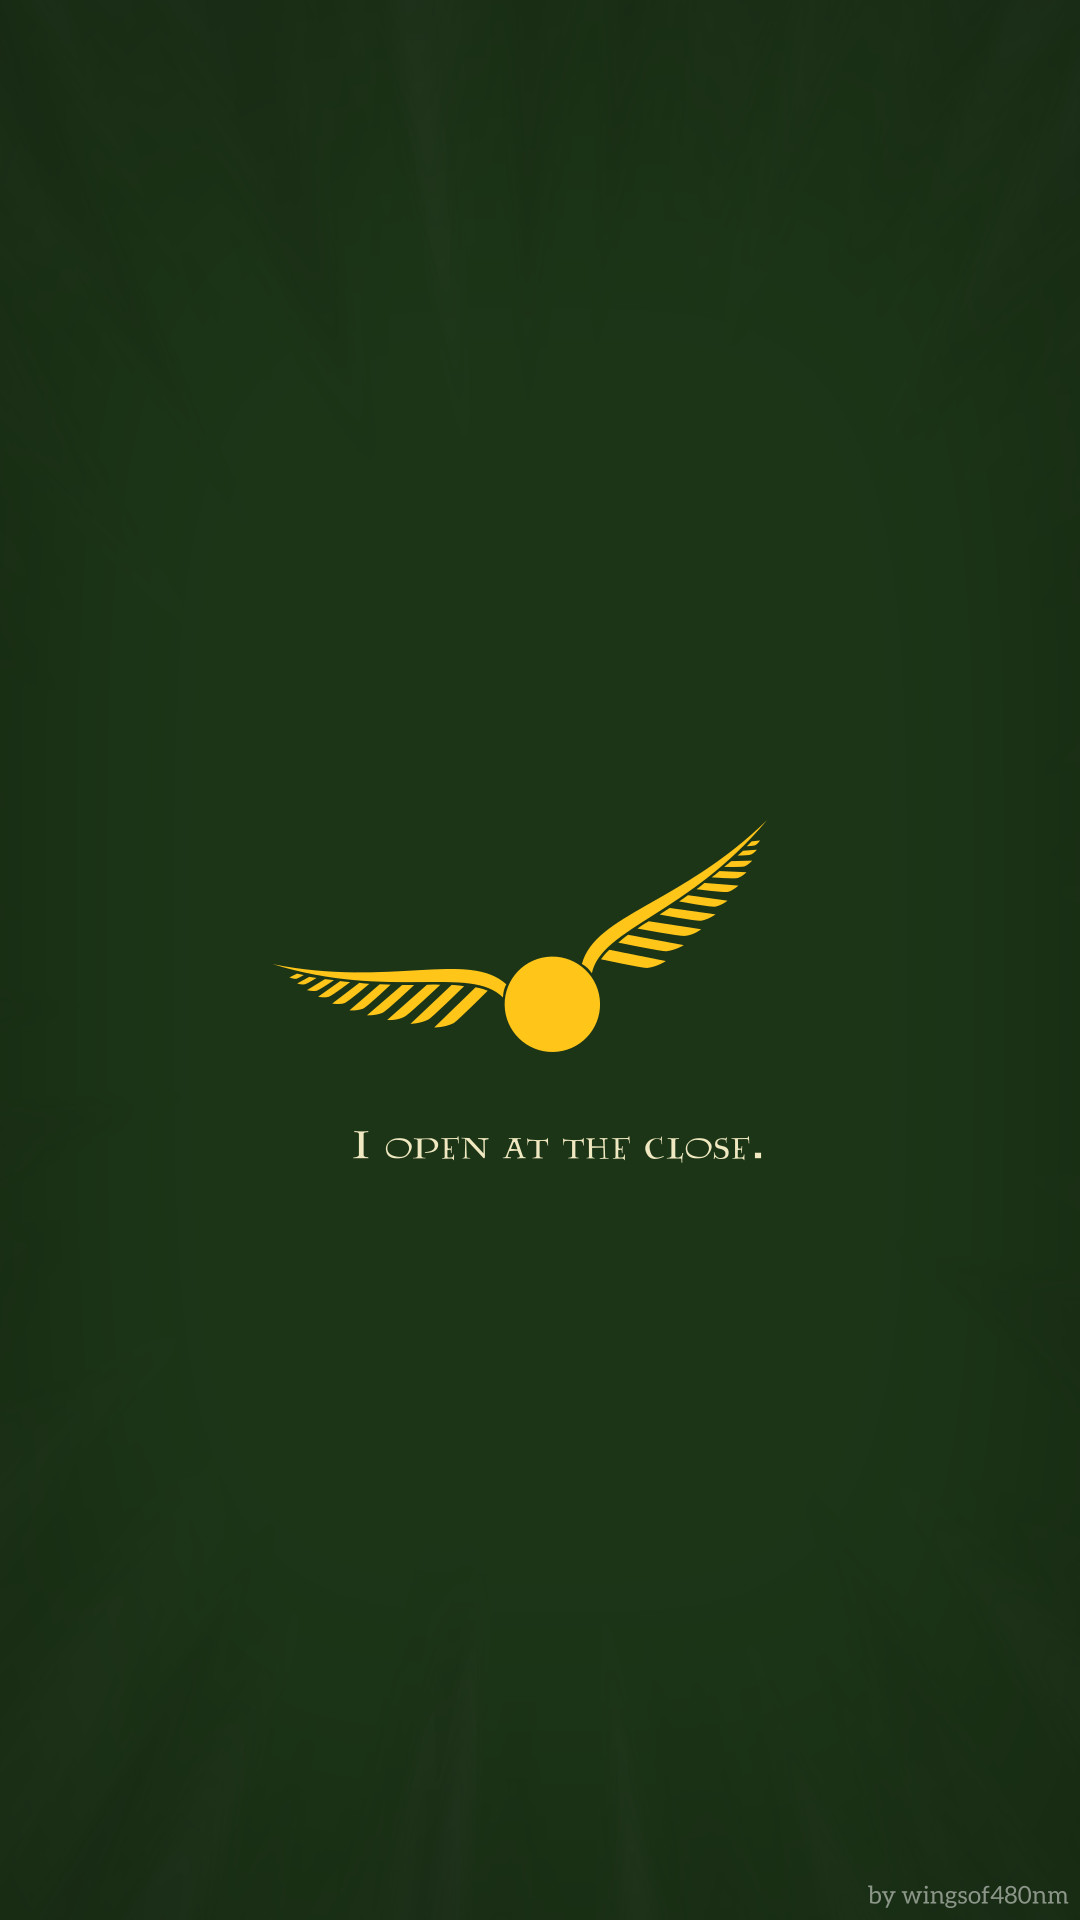 Res: 1080x1920, Ravenclaw Quidditch team - Harry Potter wallpaper - Vector .